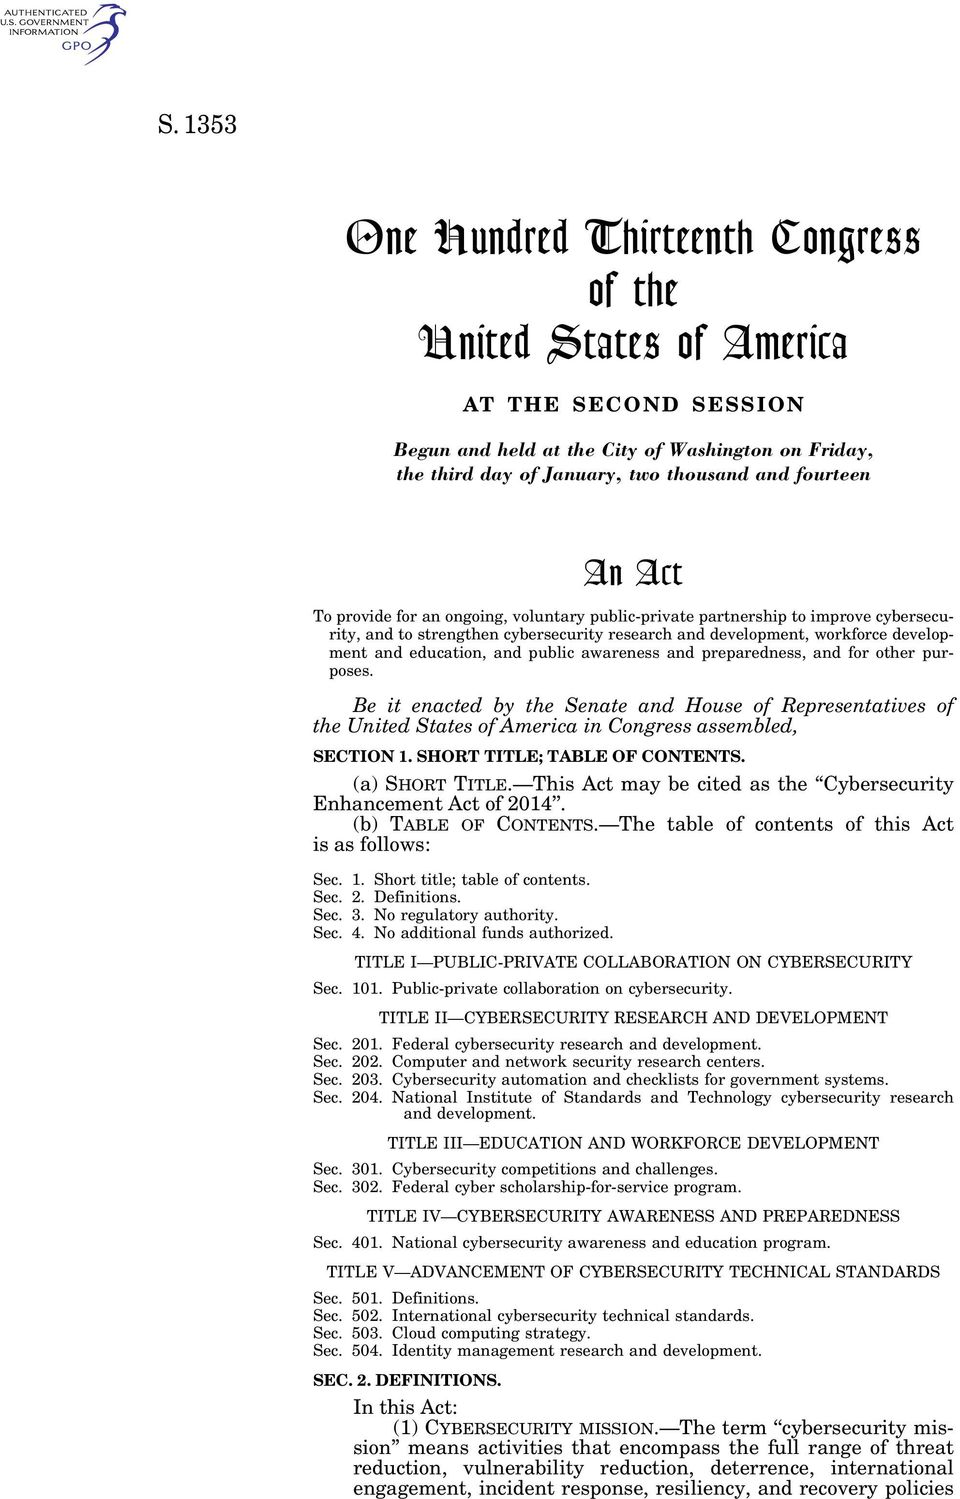 public awareness and preparedness, and for other purposes. Be it enacted by the Senate and House of Representatives of the United States of America in Congress assembled, SECTION 1.